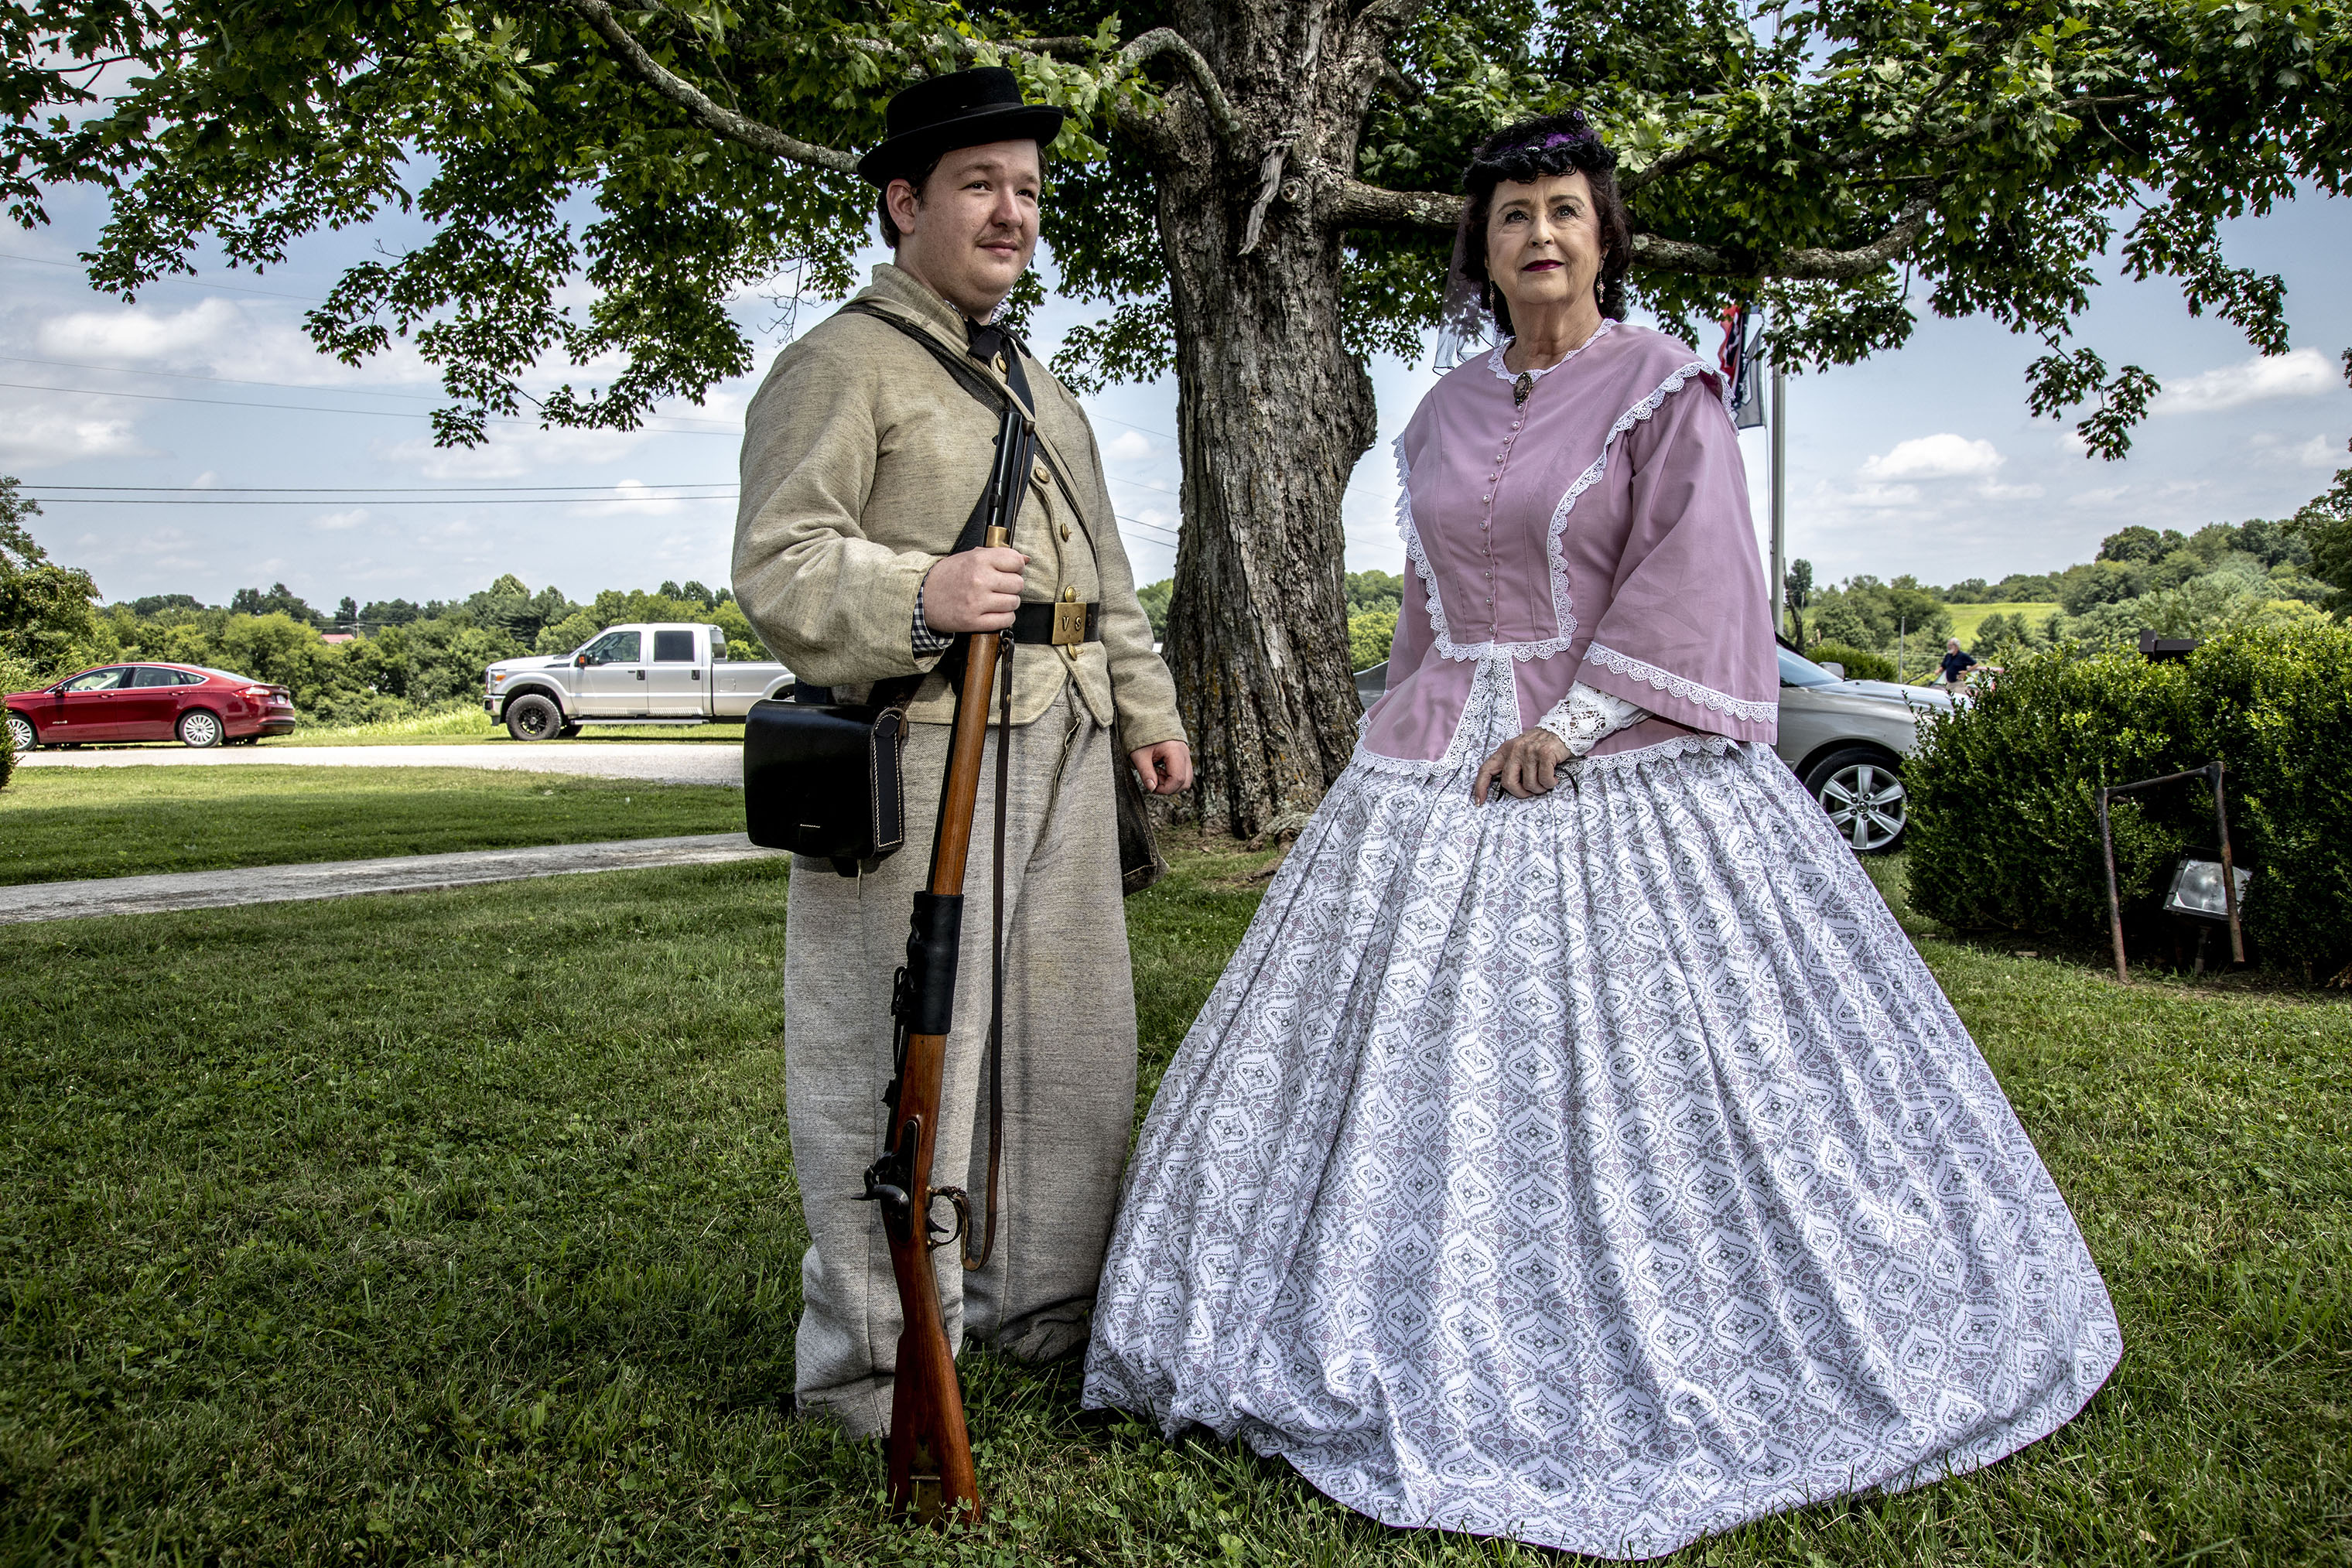 Reenactors of confederate soldiers and wives attend the dedication of the National Confederate Museum in Elm Springs in Columbia, Tenn. on July 20.